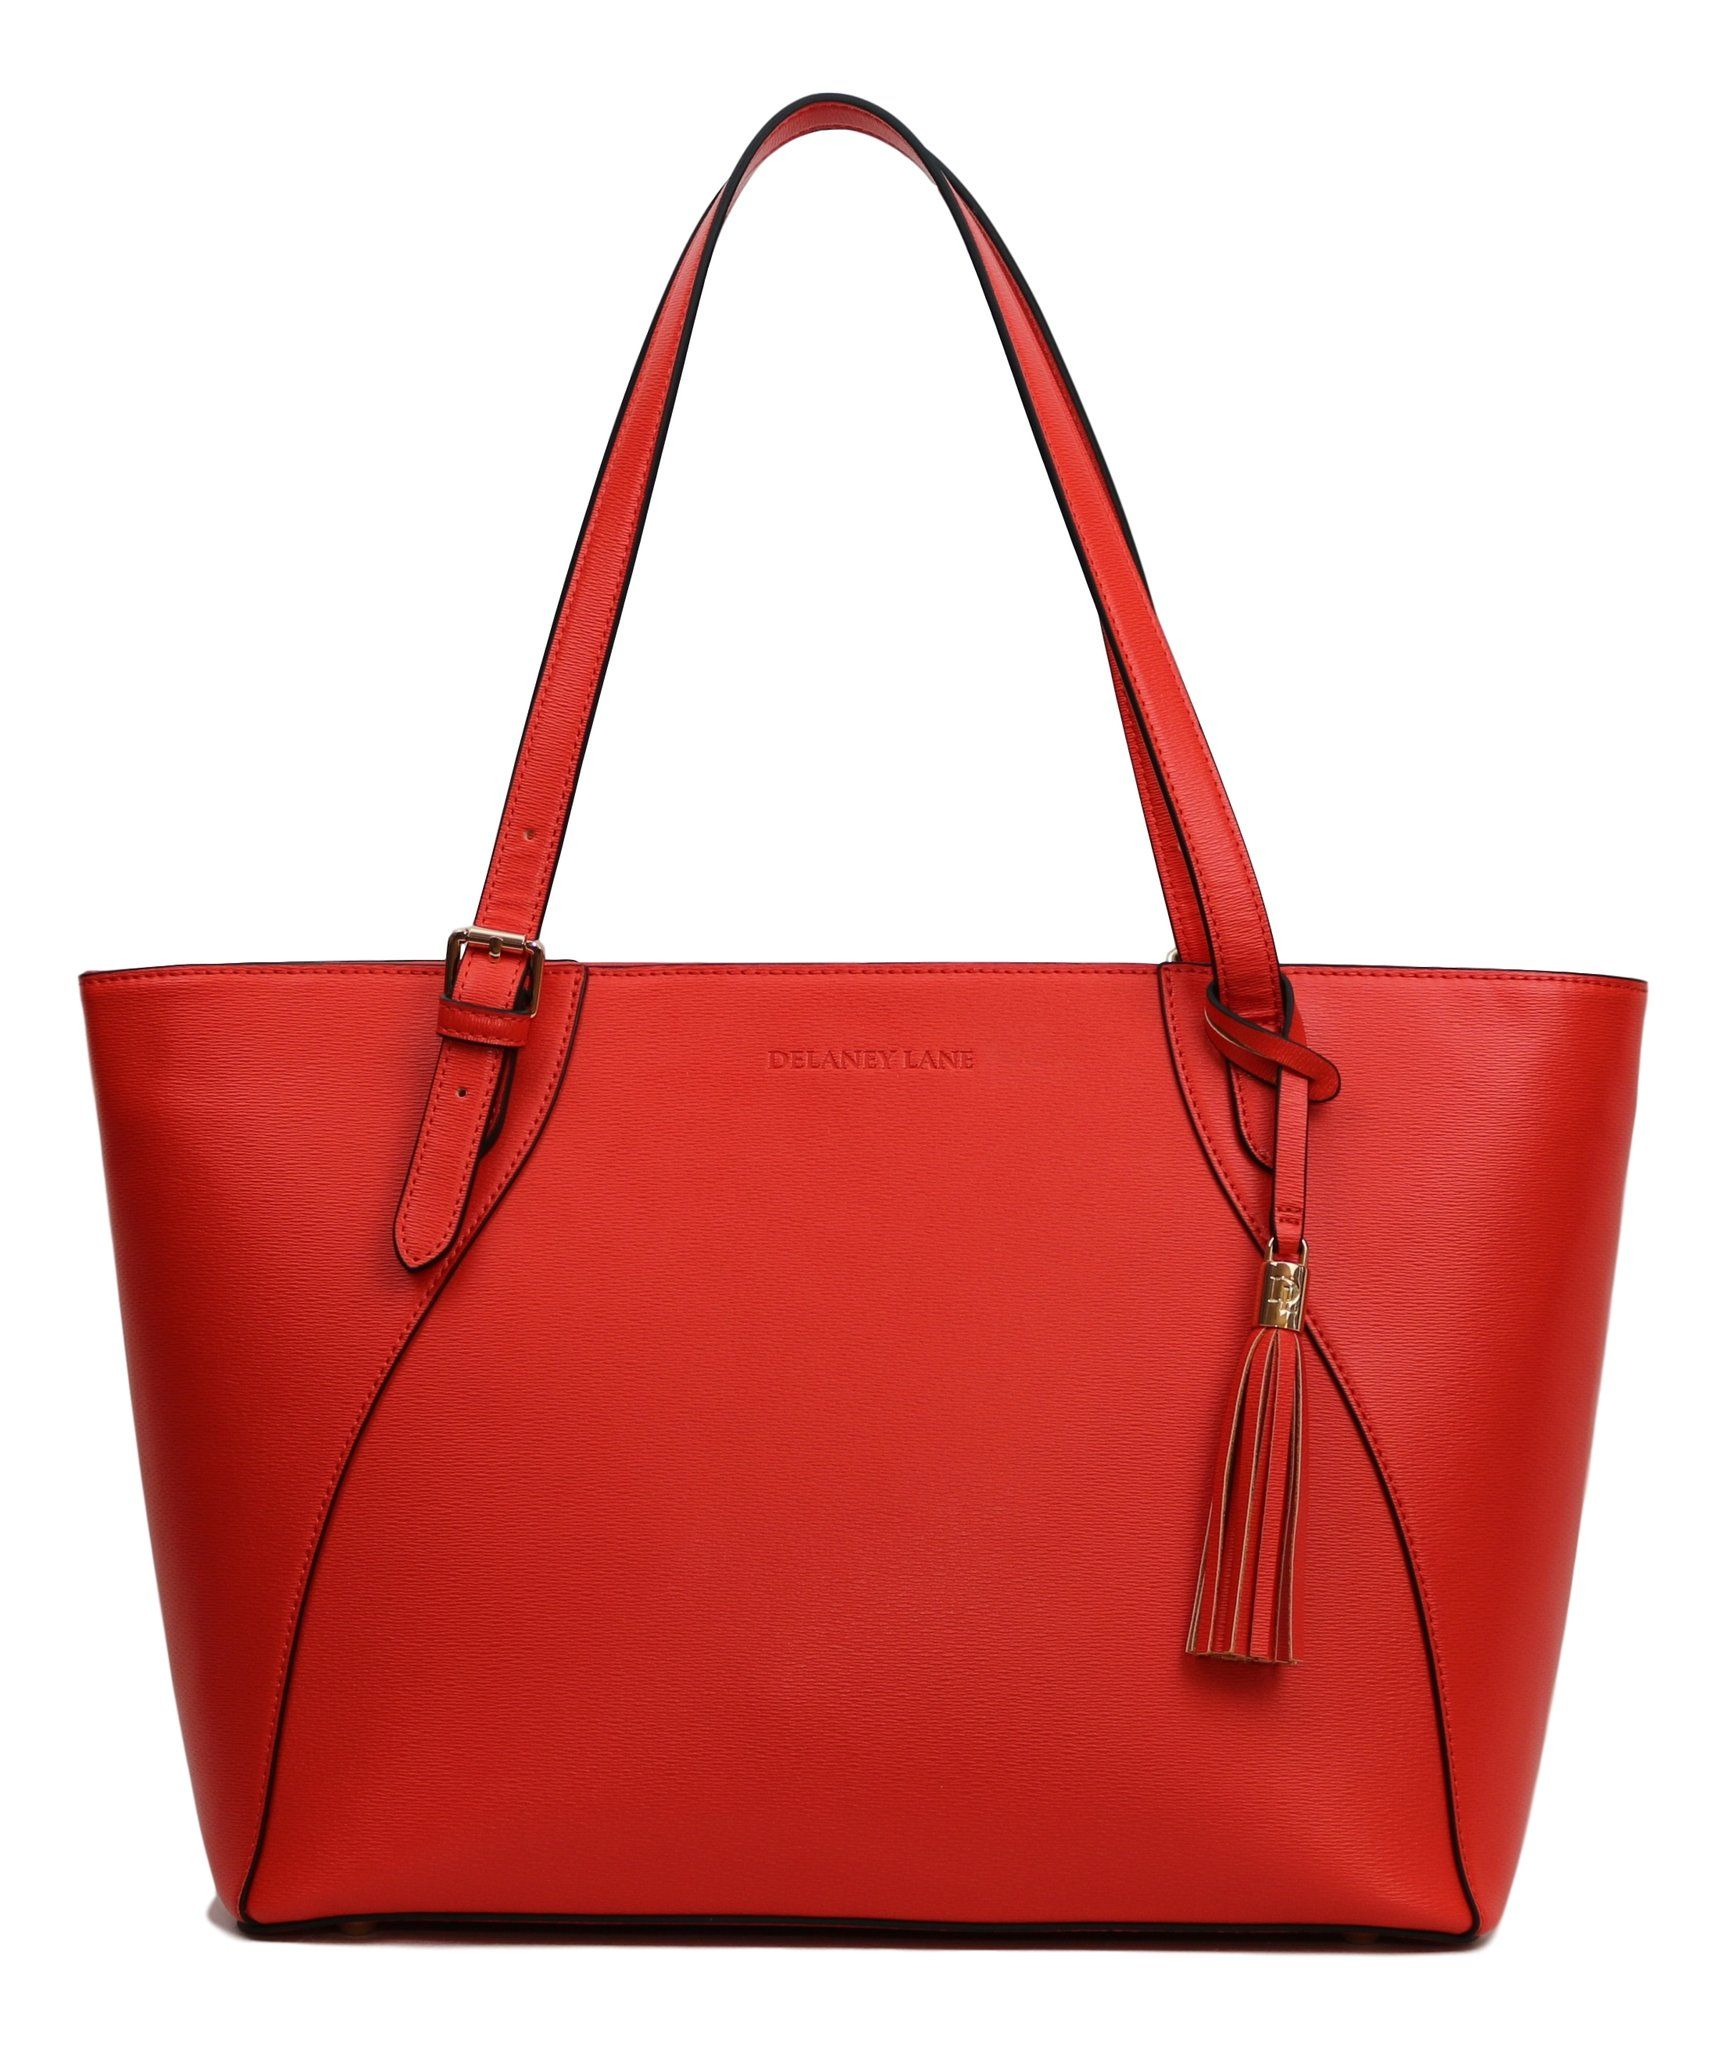 6869f2c12153e2 The best tote bags take you from day to night, transitioning from office bag  to